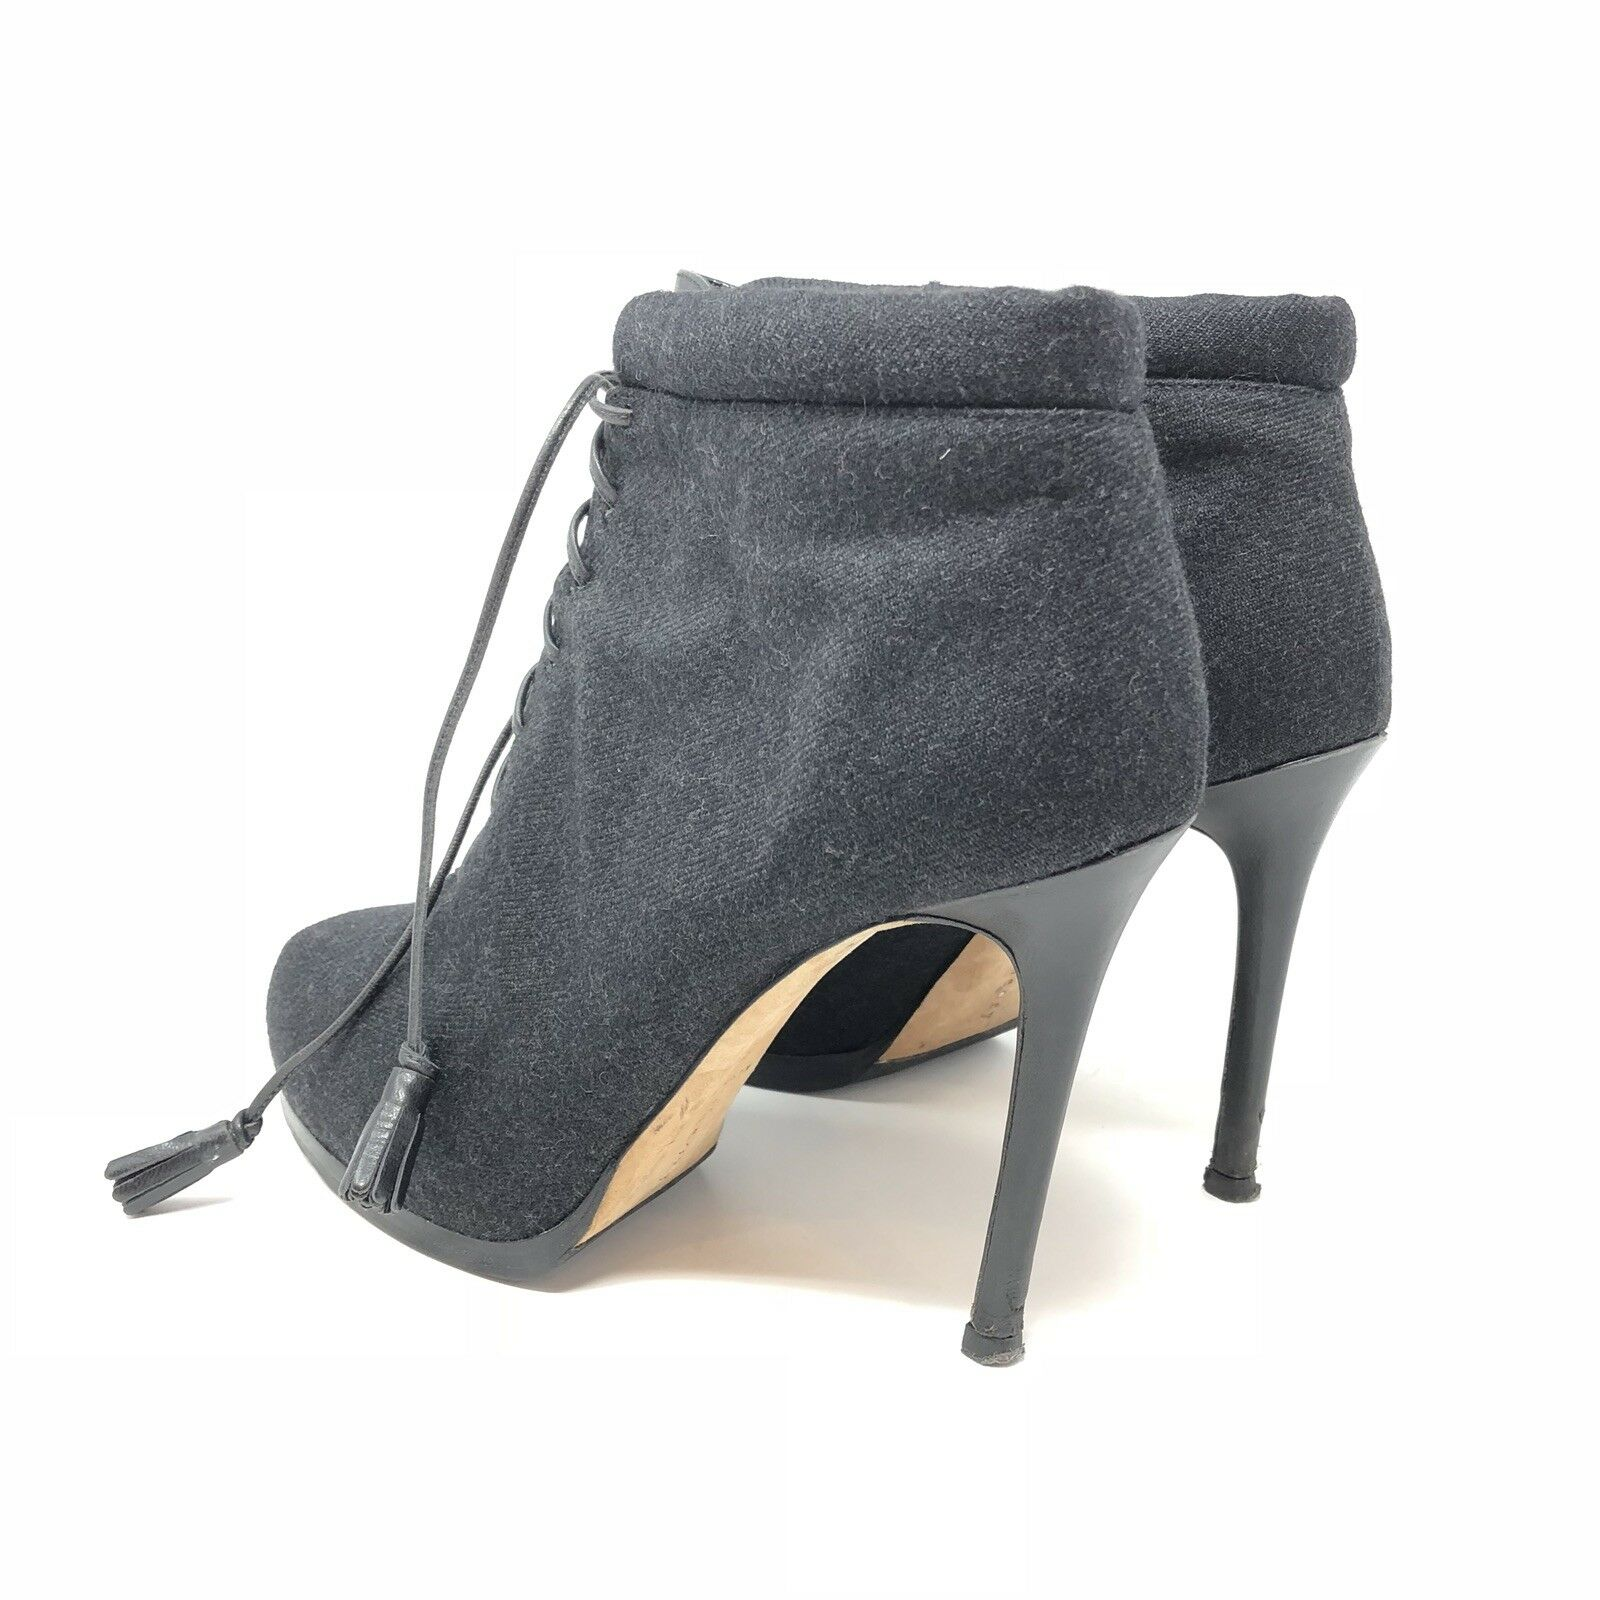 THEORY Fabric Fabric Fabric Leather Lace Up Platform Stiletto Ankle Booties Heel Boot 36  7420a6